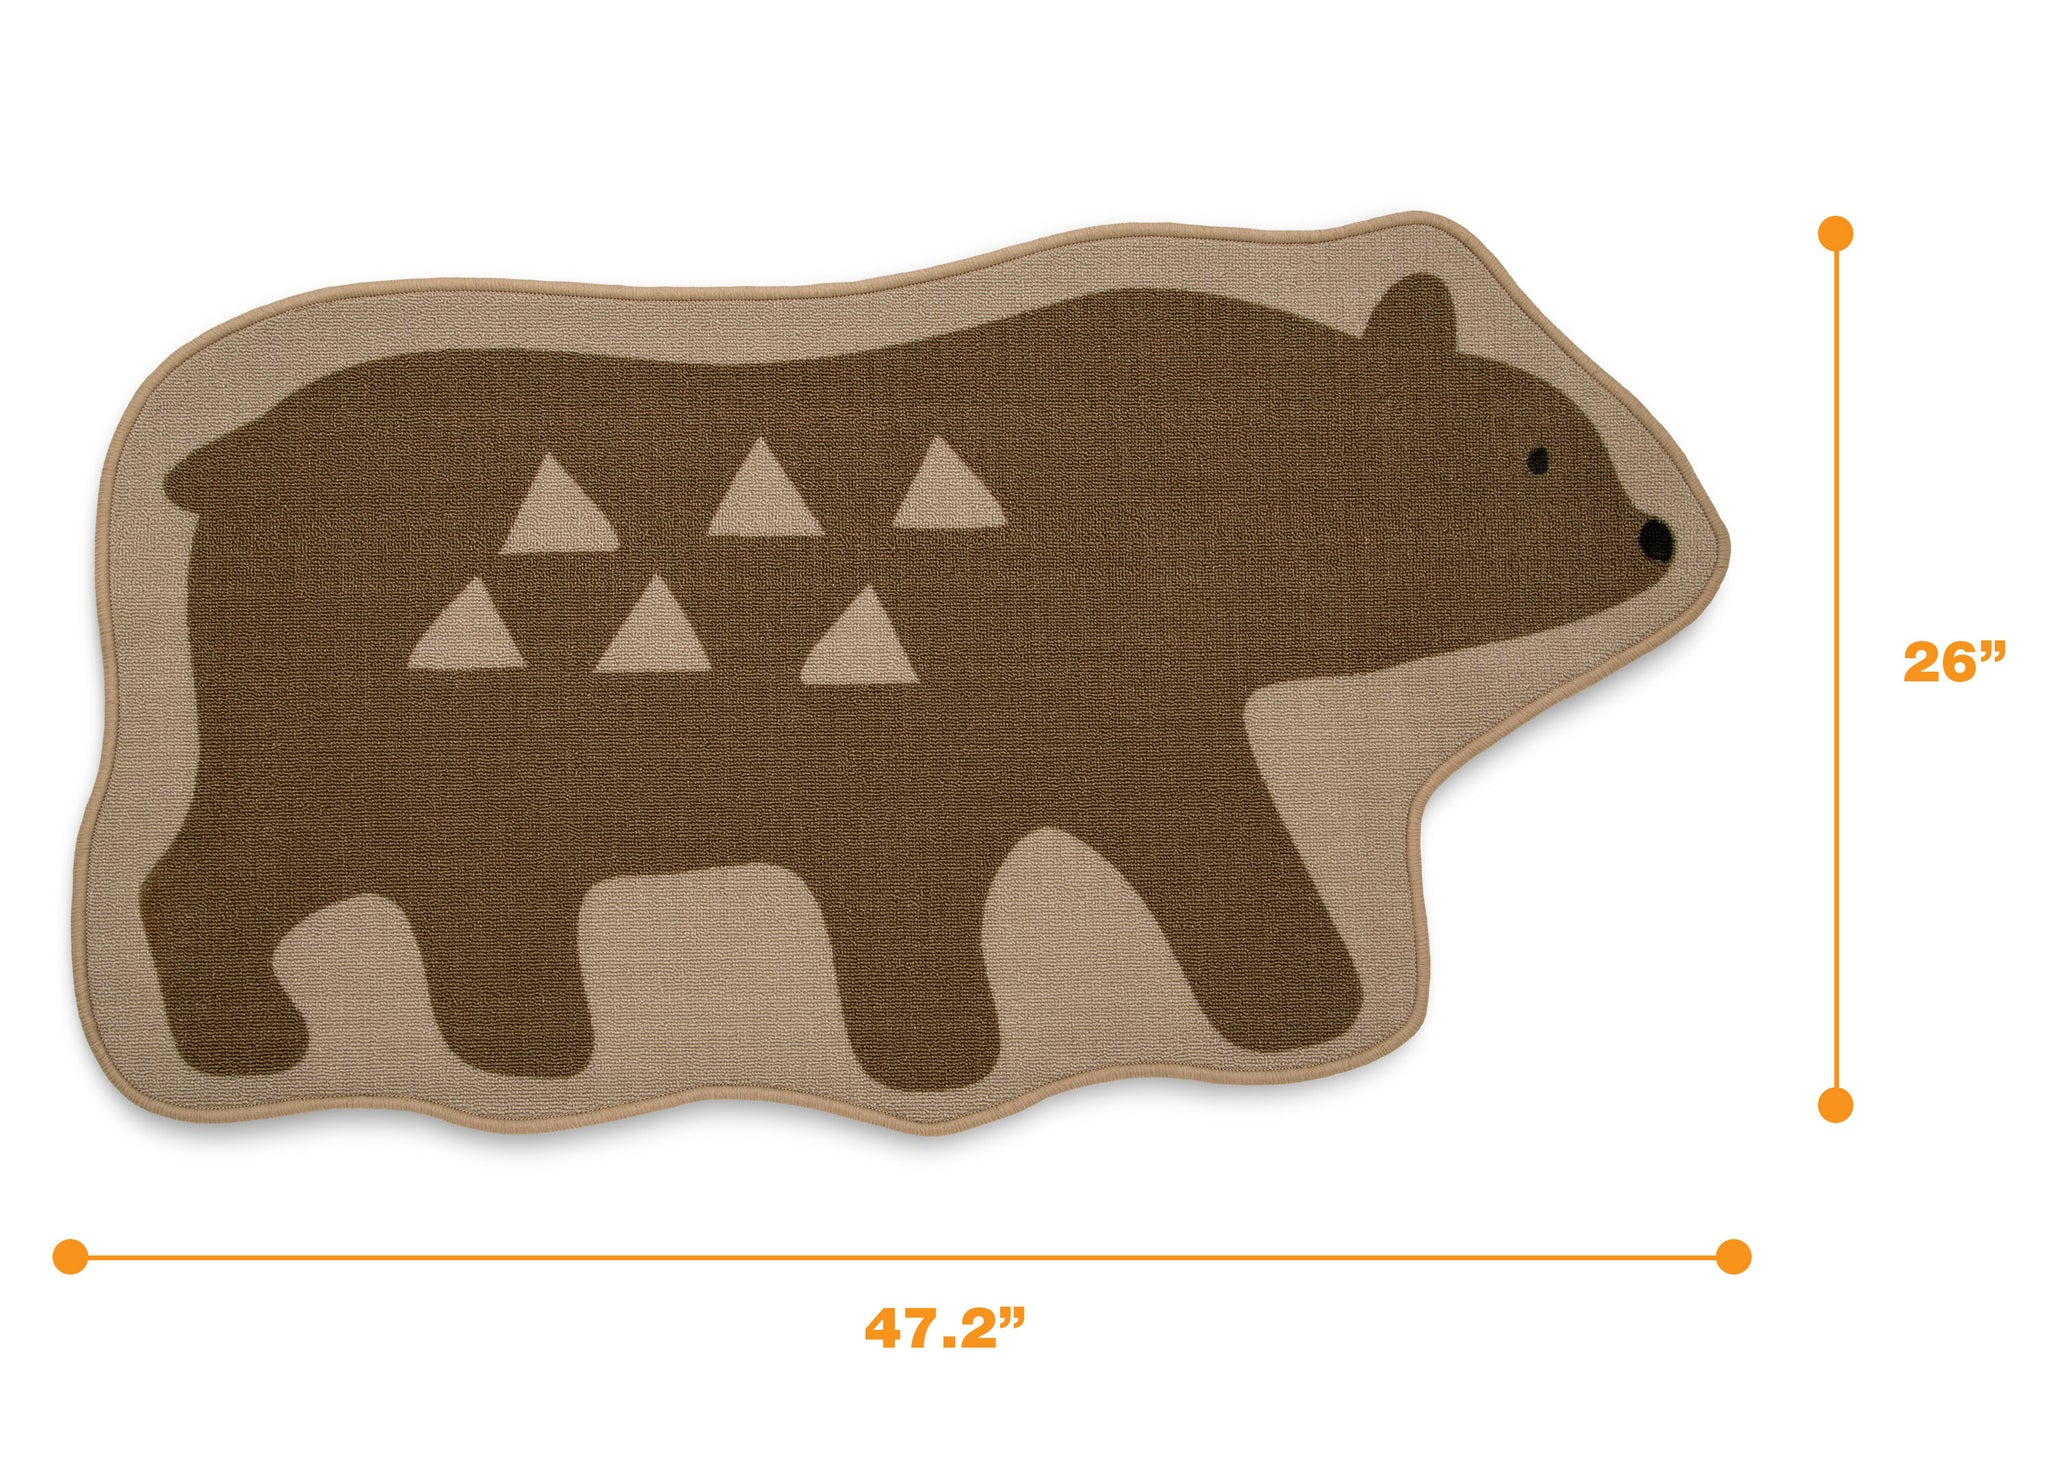 Delta Children Bear (3209) Non-Slip Area Rug for Boys, Measured View